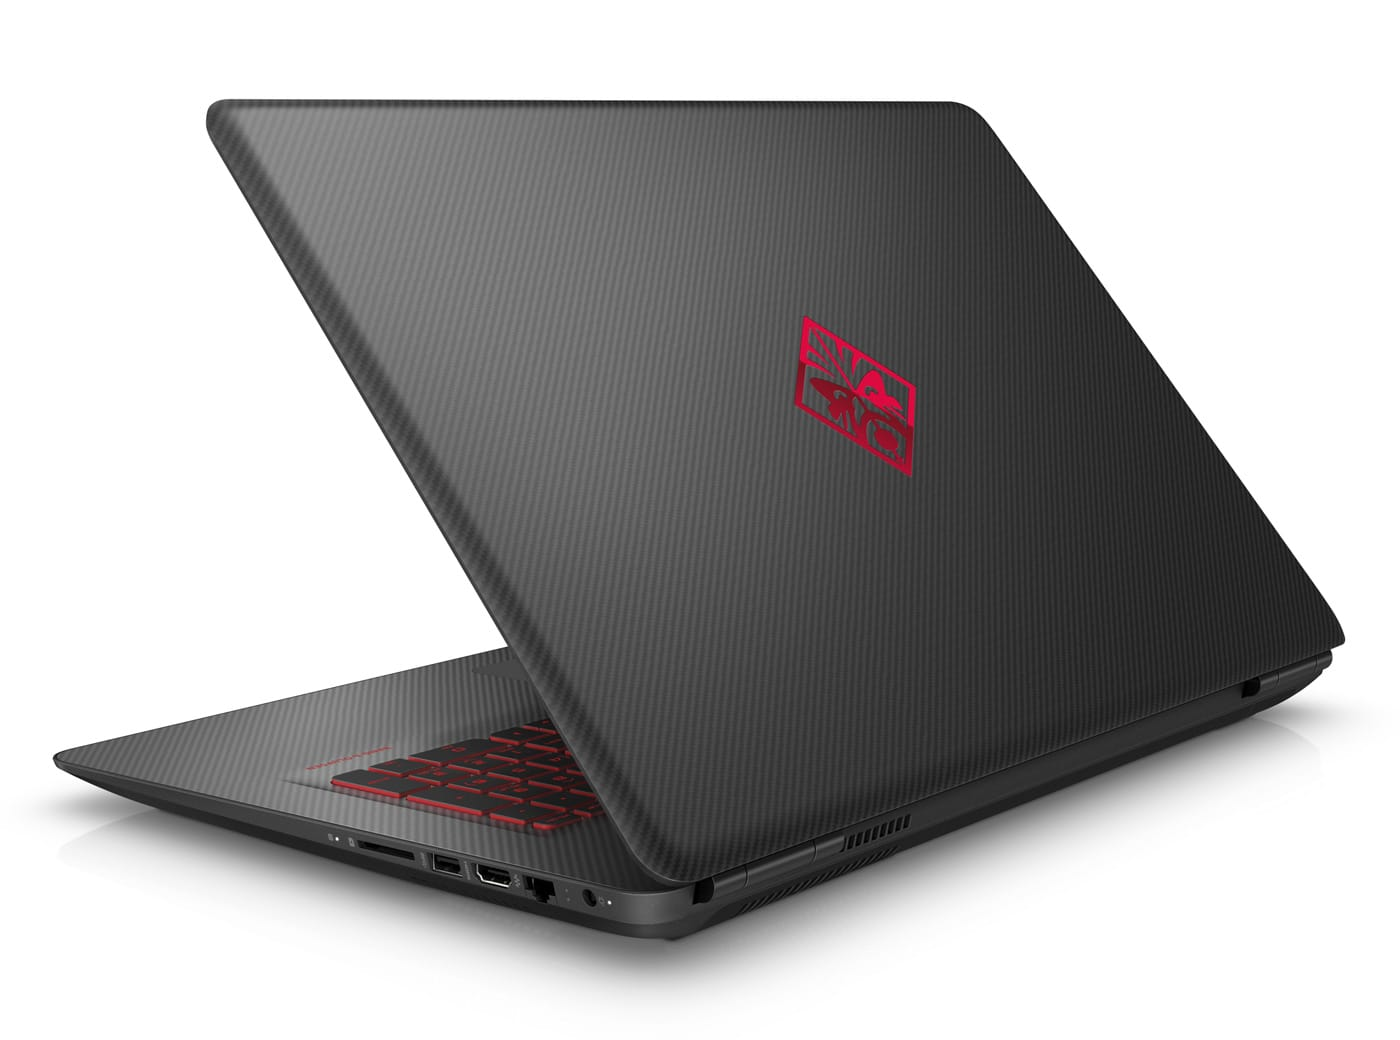 HP Omen 17-w224nf, PC portable 17 pouces IPS SSD 256 GTX 1050 (854€)